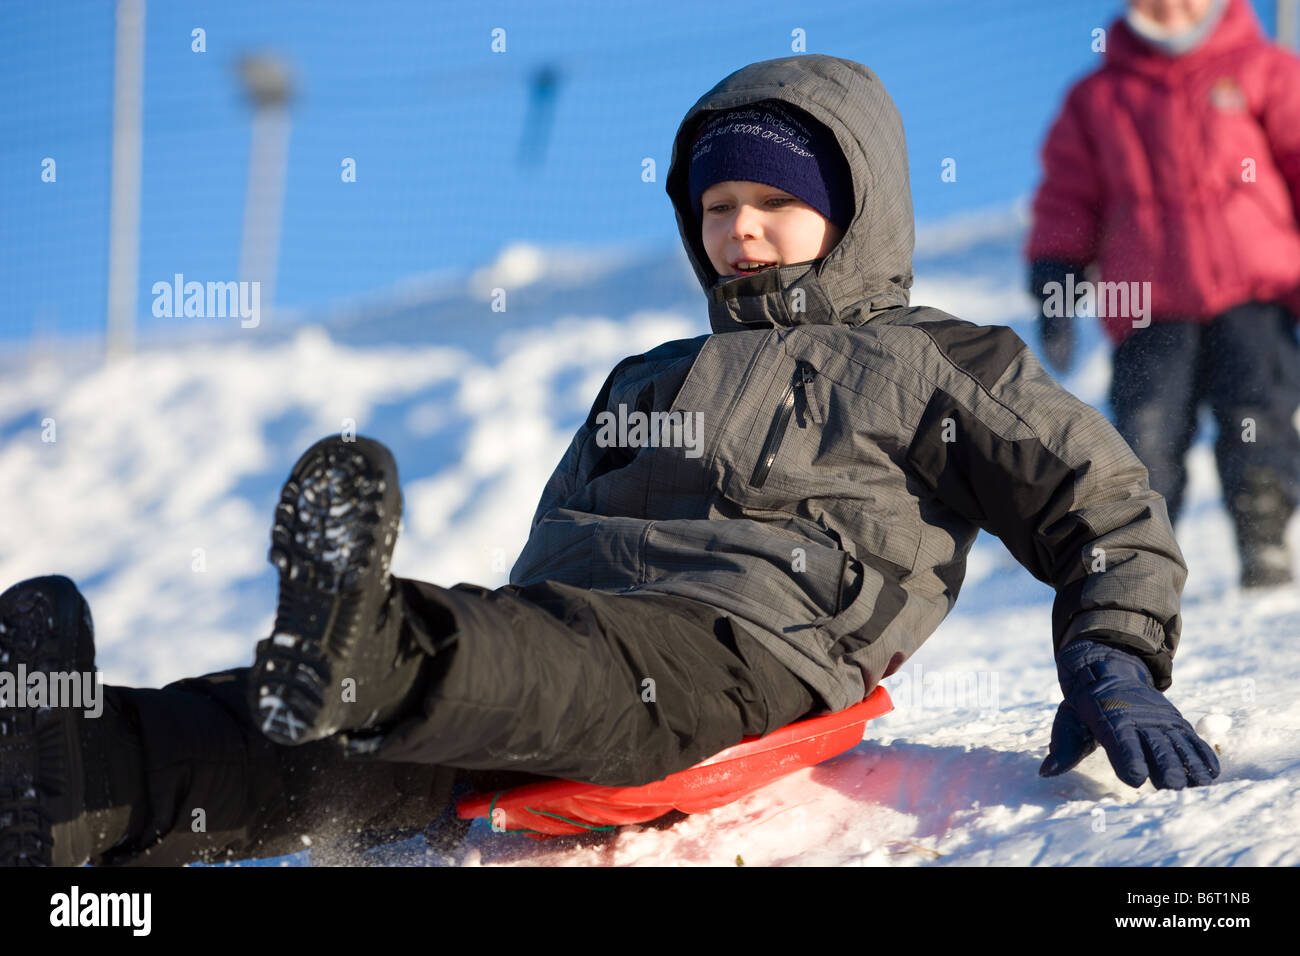 Brave little boy slides on plastic bob from hillside with high speed Stock Photo